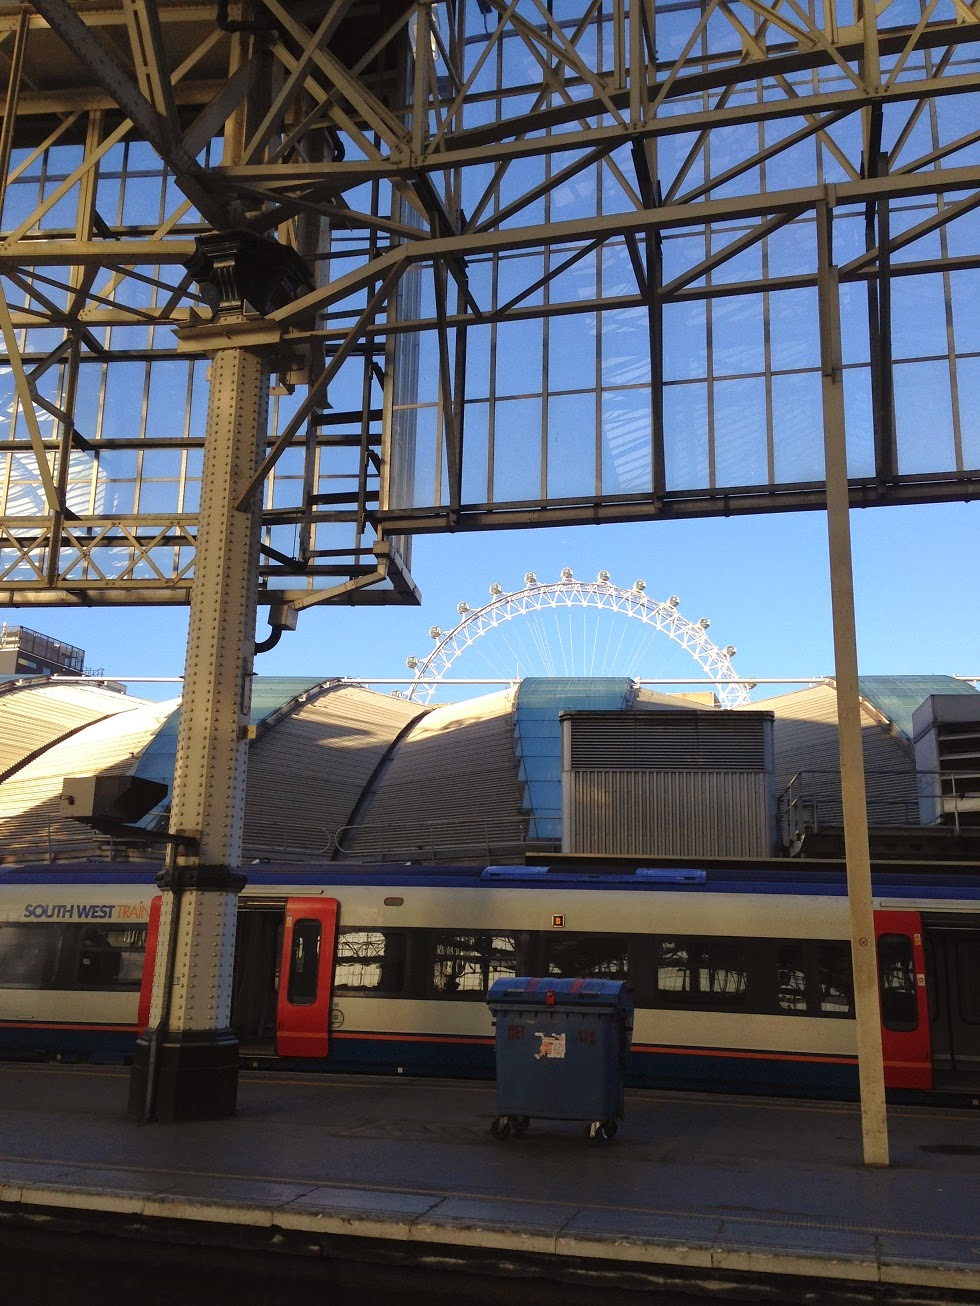 London Eye from Waterloo station, London